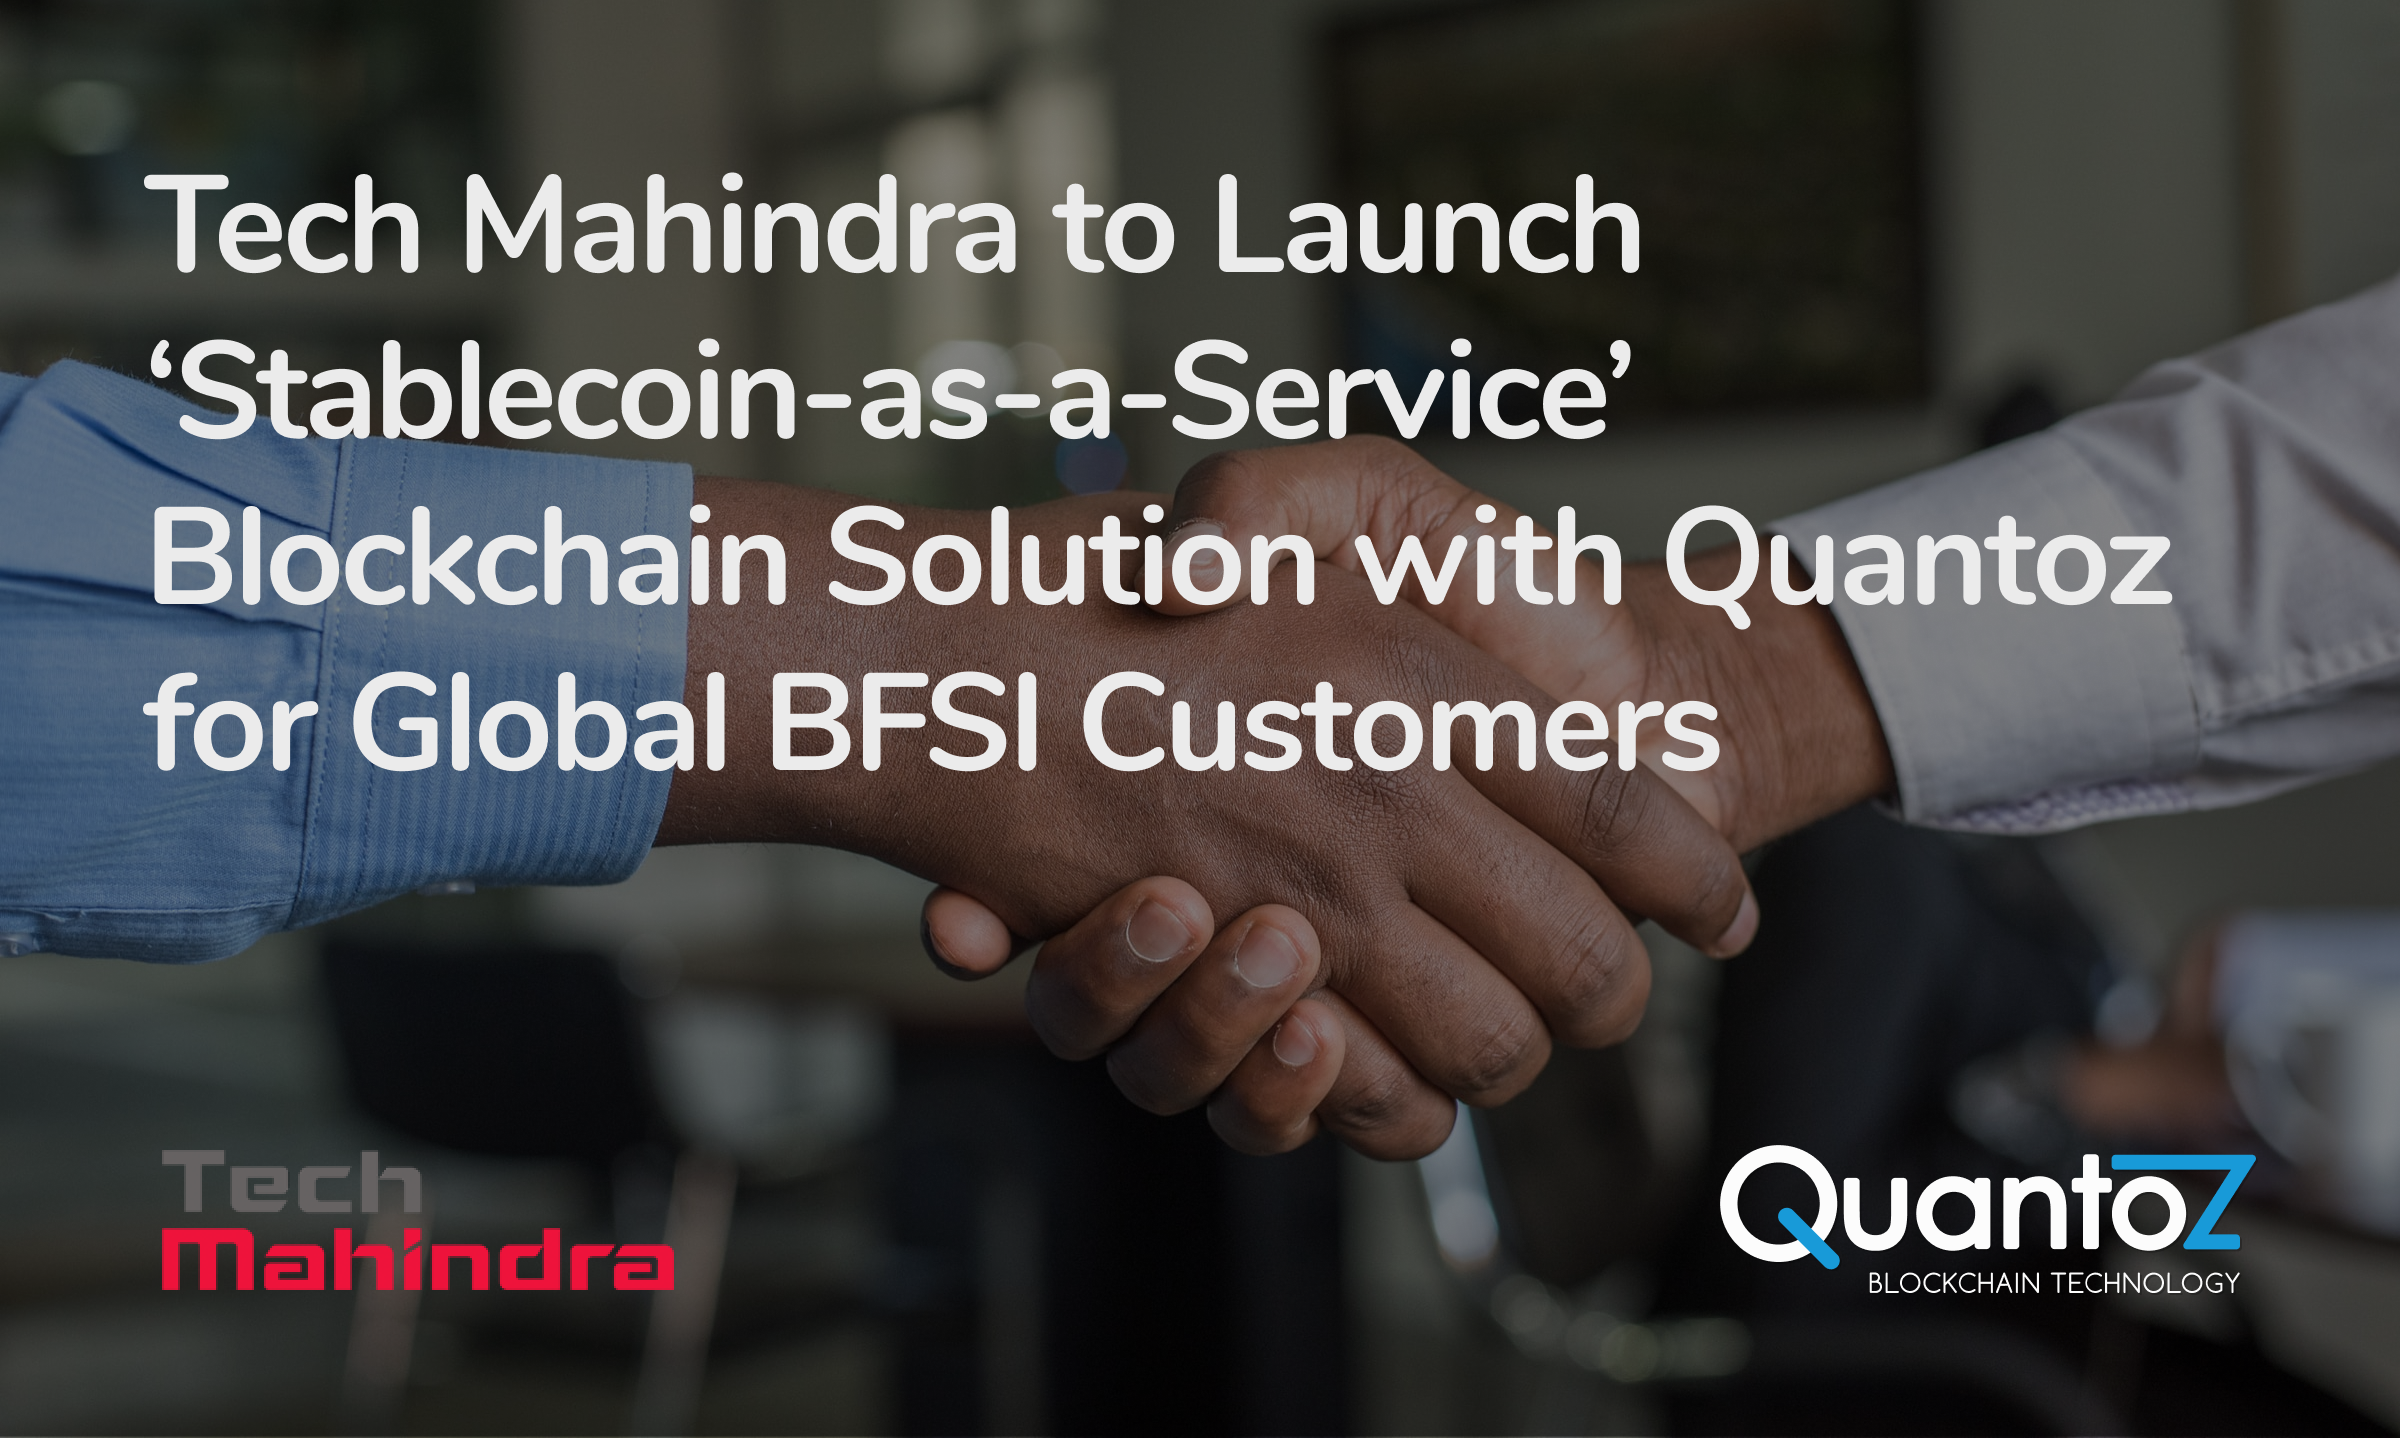 Tech Mahindra stablecoin partnership